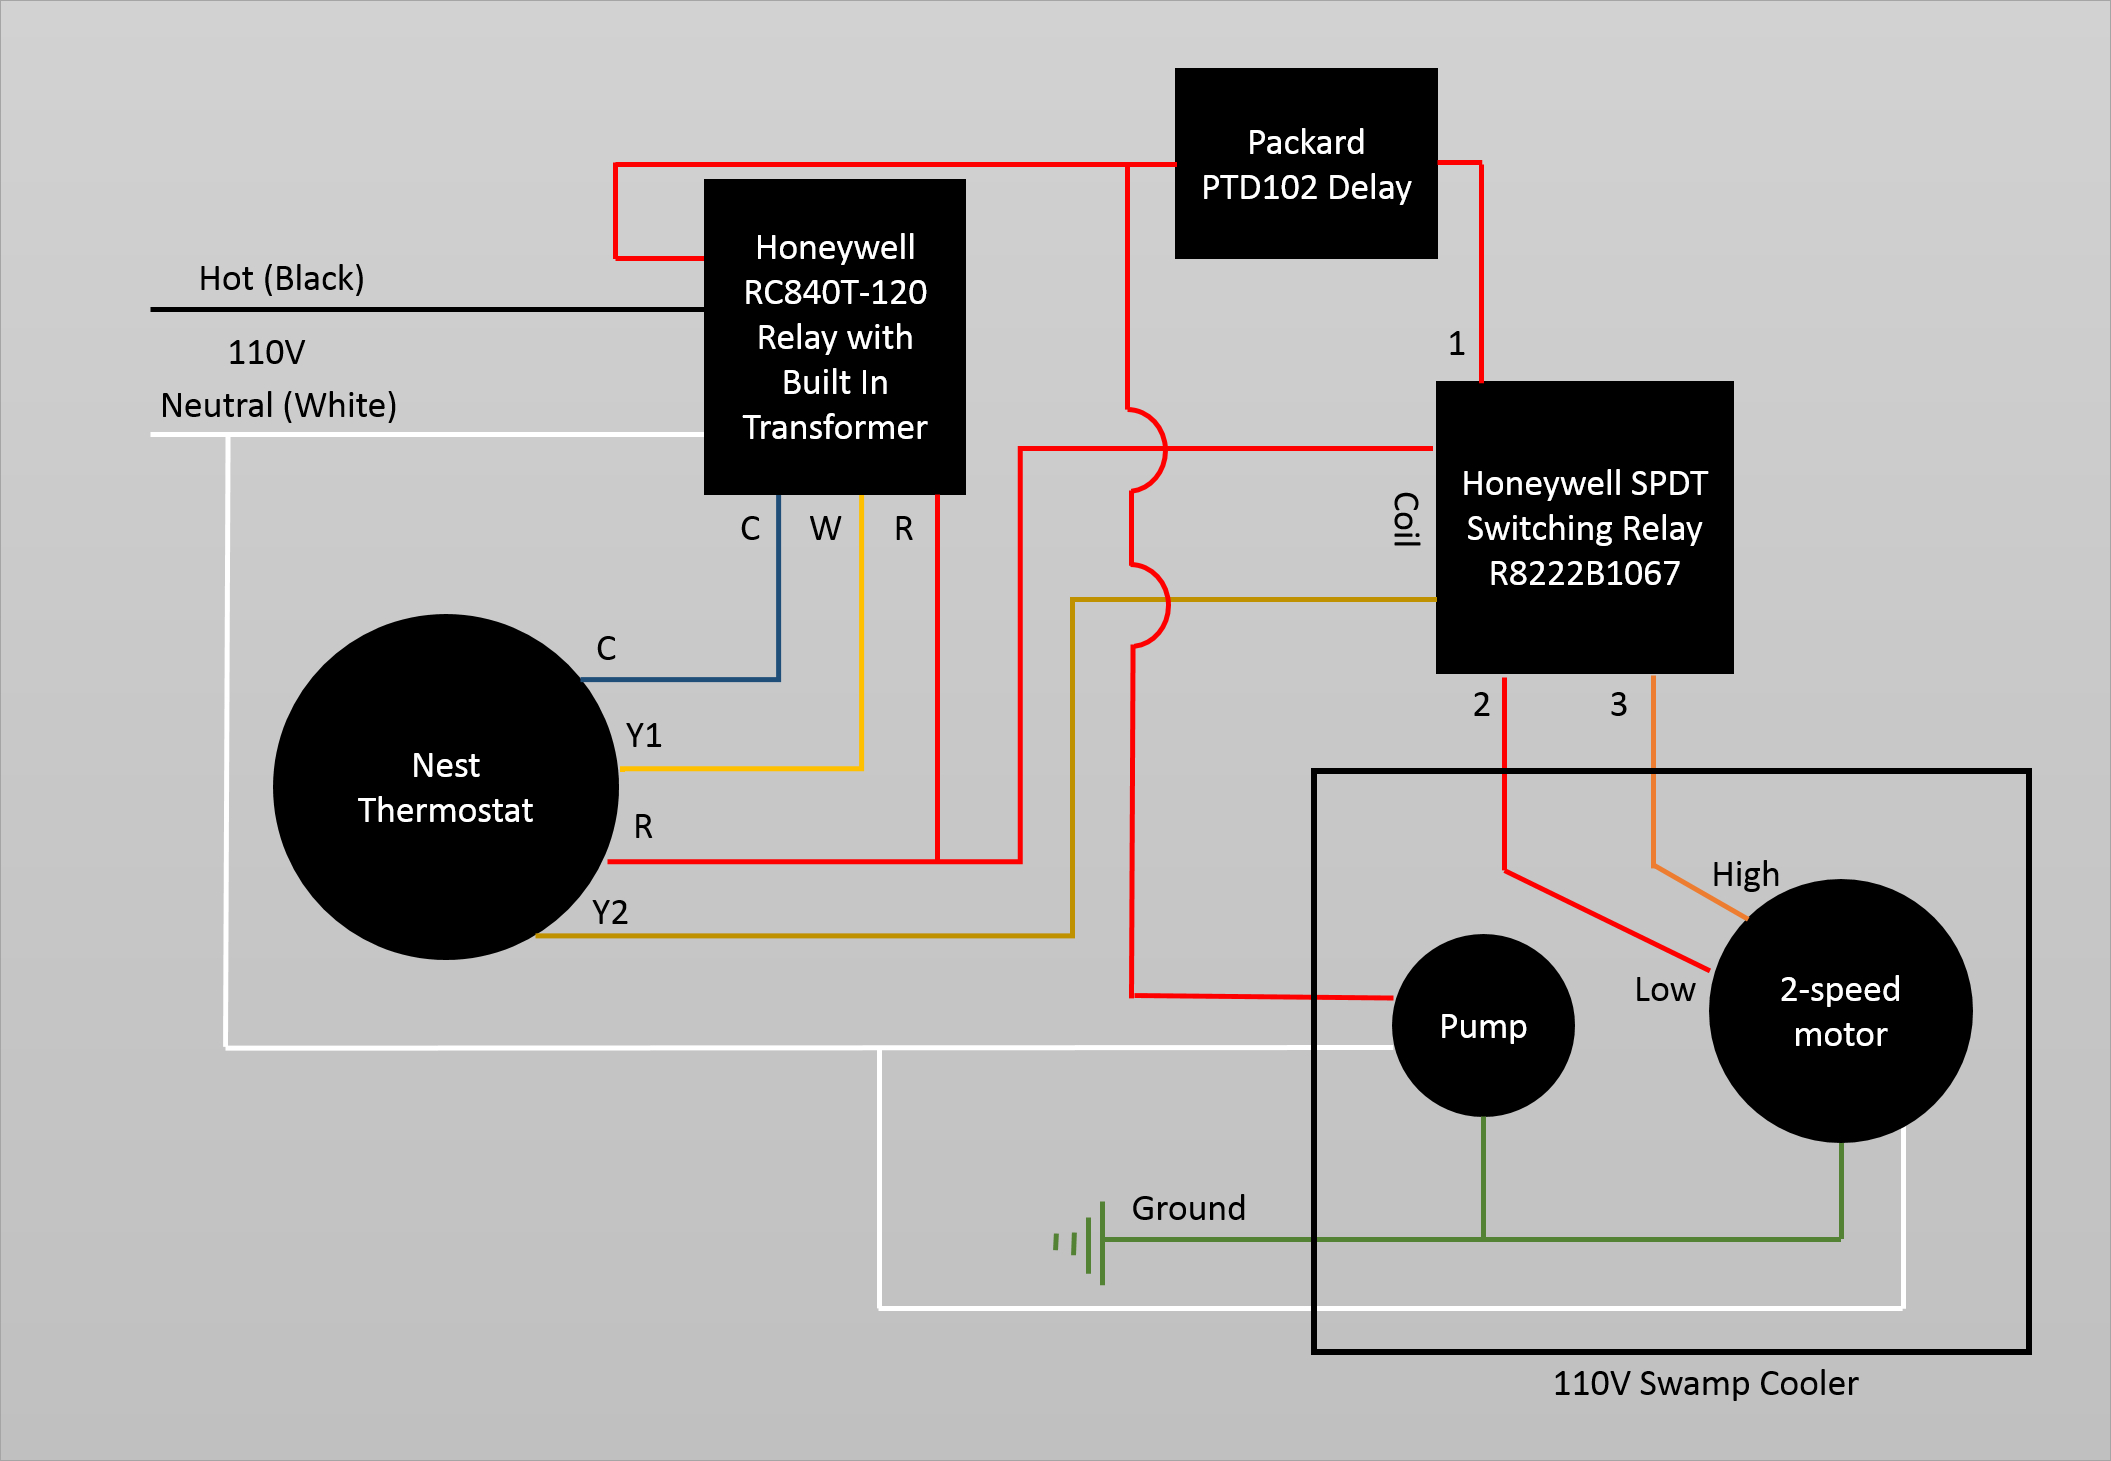 Wiring - Controlling 110V Swamp Cooler Using Nest Thermostat - Home - Lennox Nest Wiring Diagram